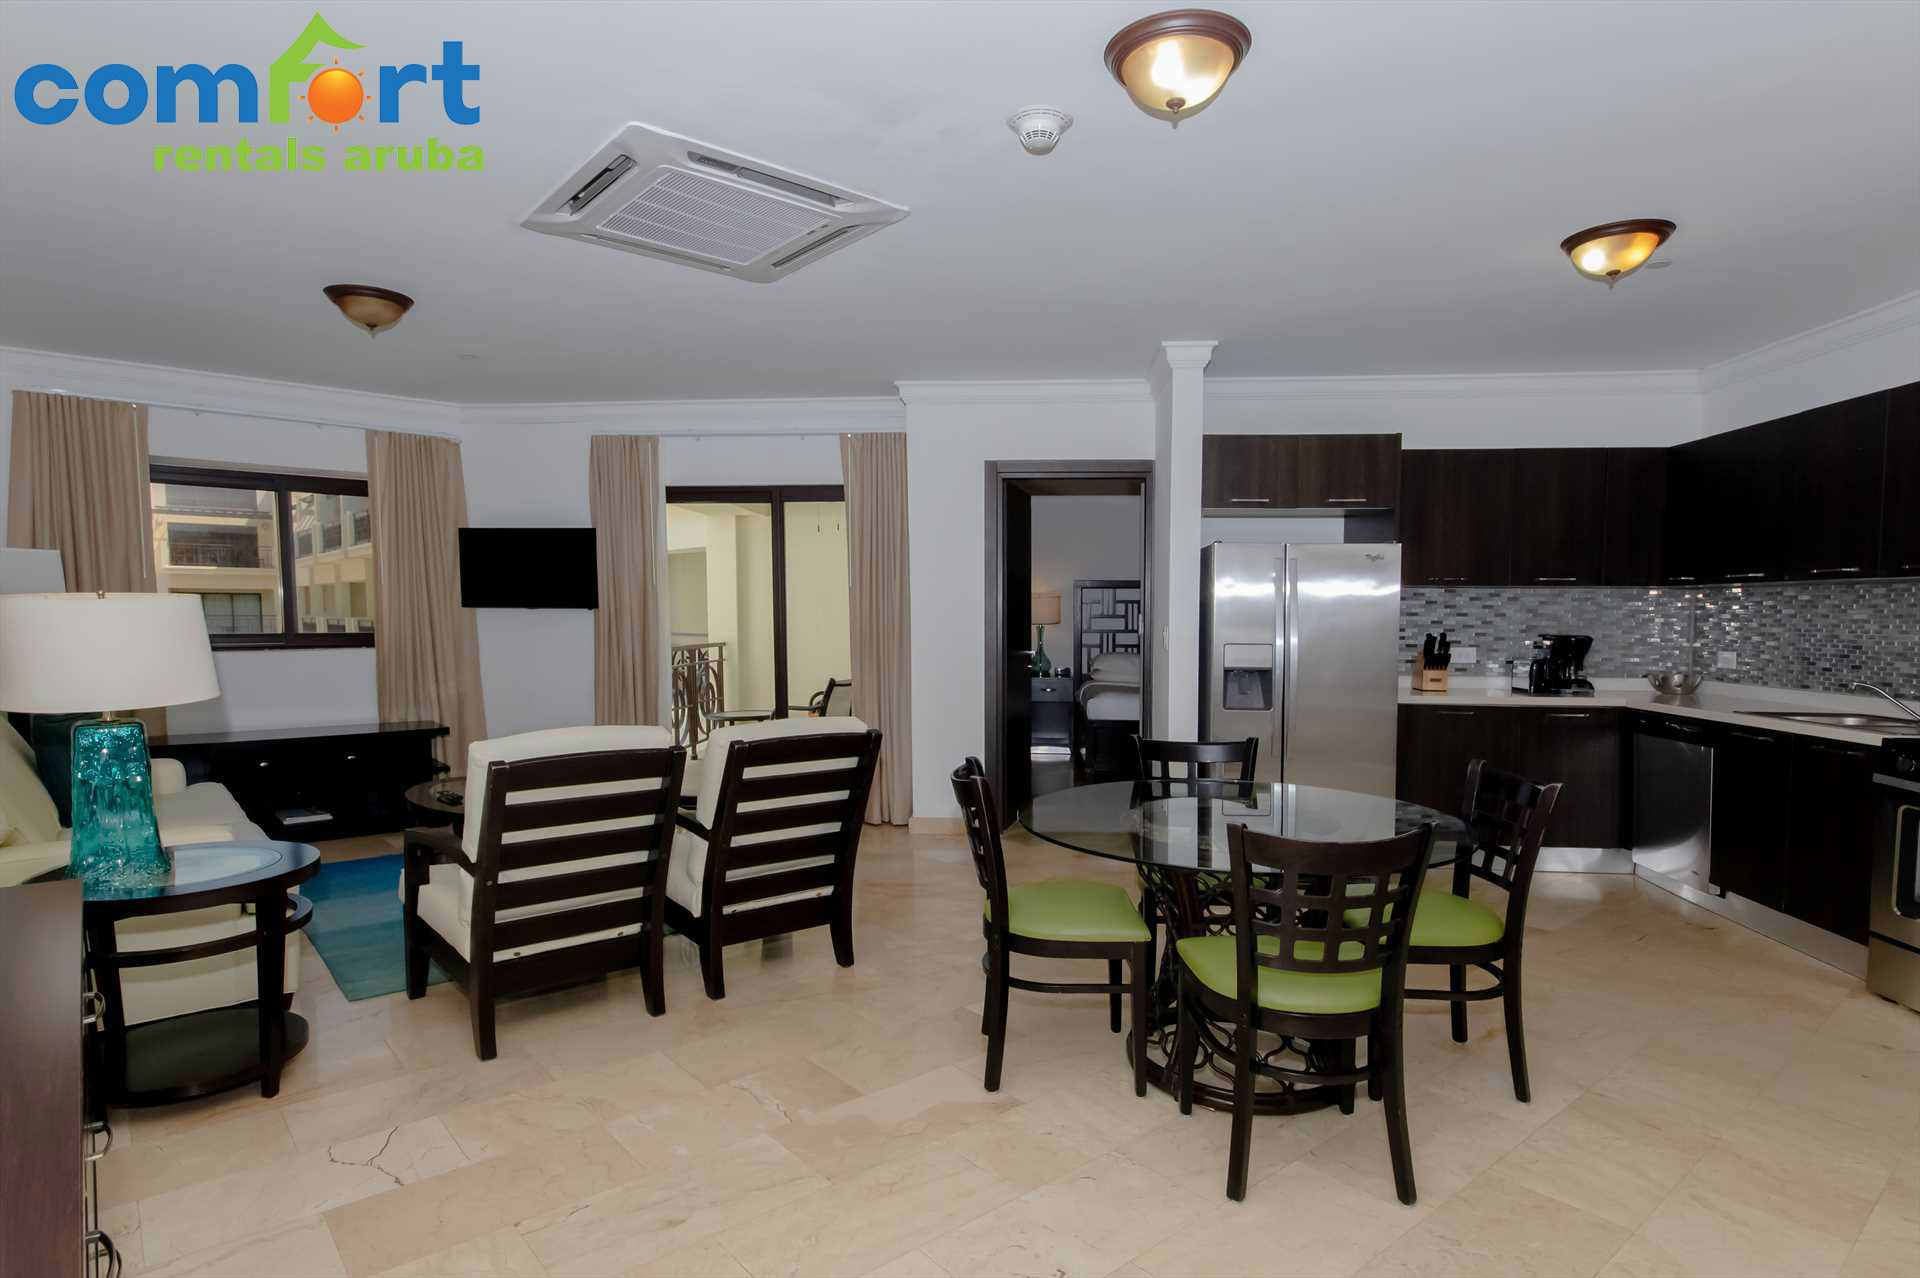 Banana Palm One Bedroom Condo Pc411 Comfort Rentals Aruba Aruba Vacation Rentals Aruba Accommodation Aruba Condo Rentals Aruba Resorts Aruba Villa Rentals